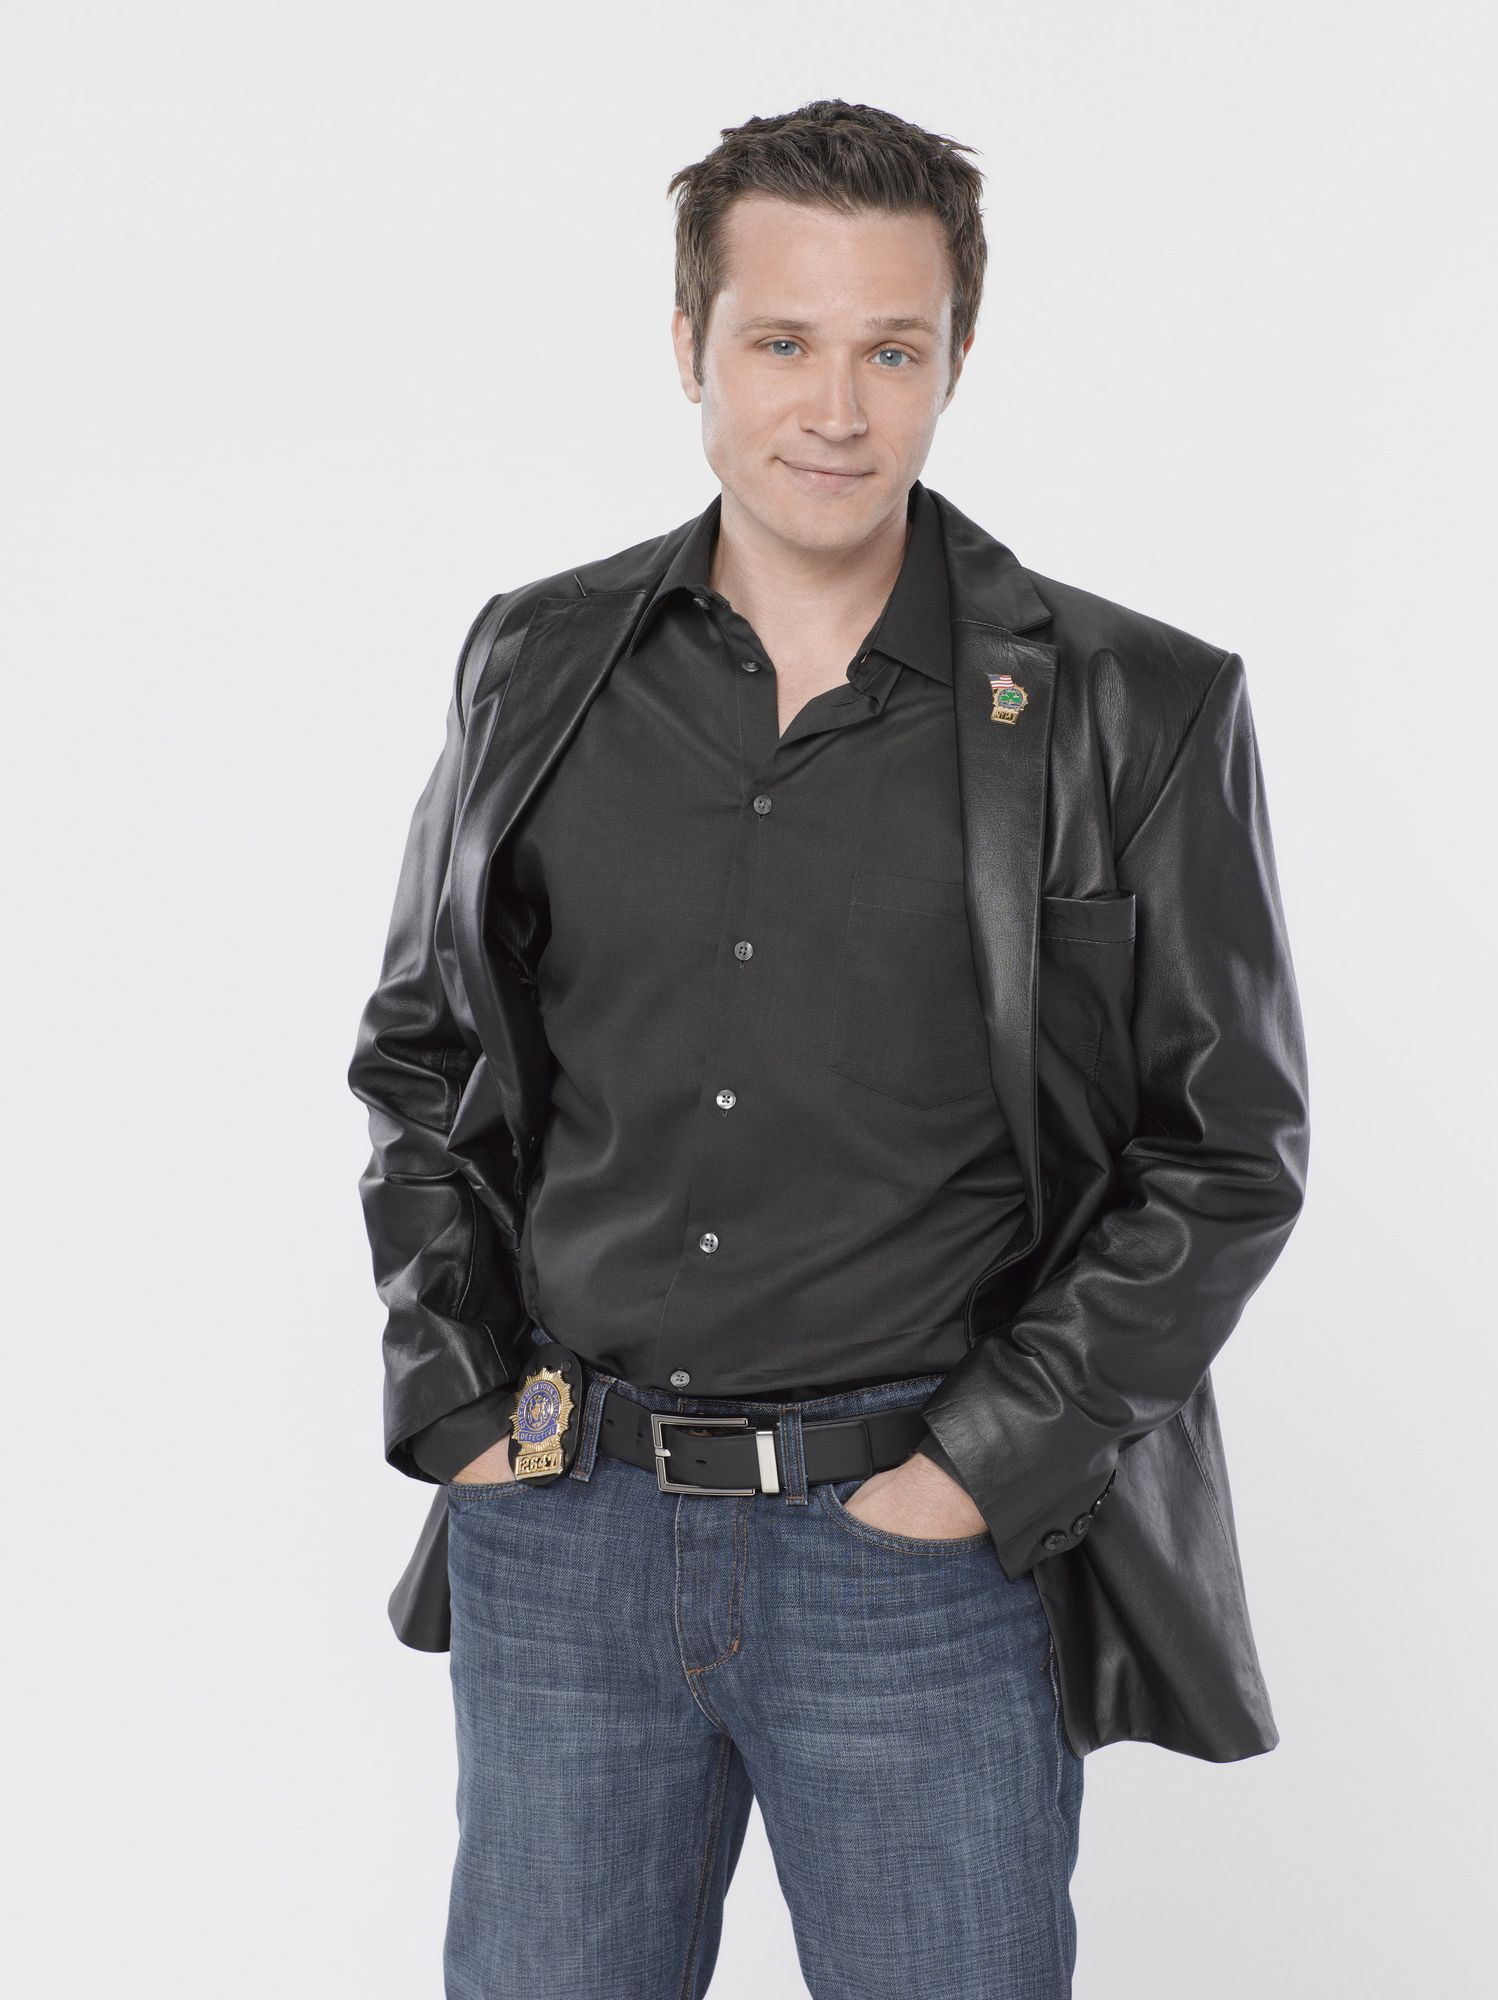 Seamus Dever Wallpapers